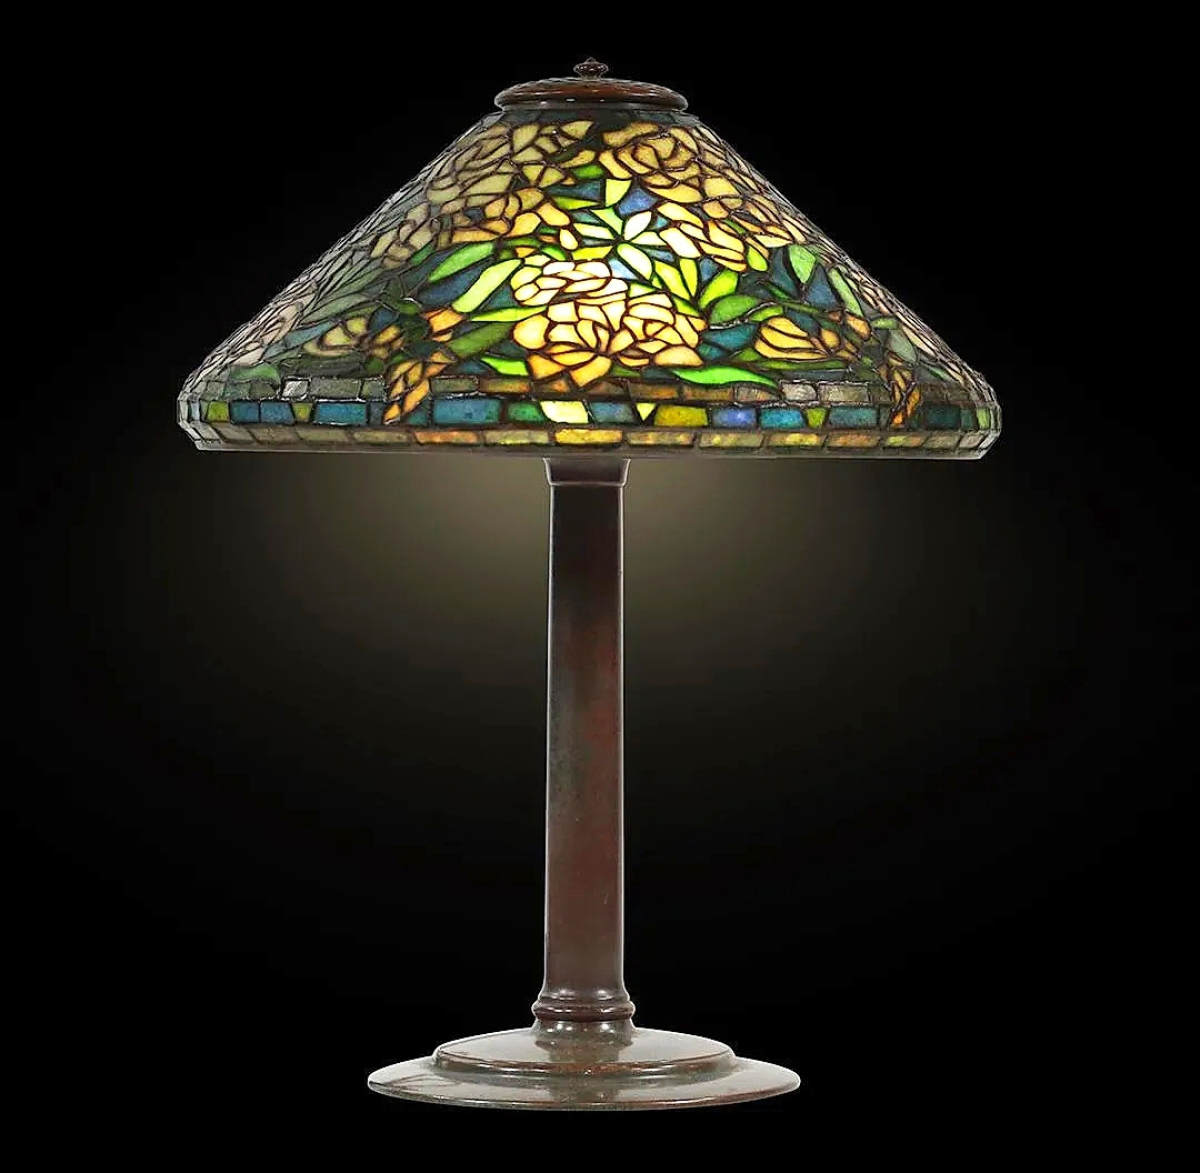 """At $12,000 was a Tiffany Studios """"Wild Rose"""" leaded glass table lamp on bronze base. It was the top lot of the 1,000-lot sale."""